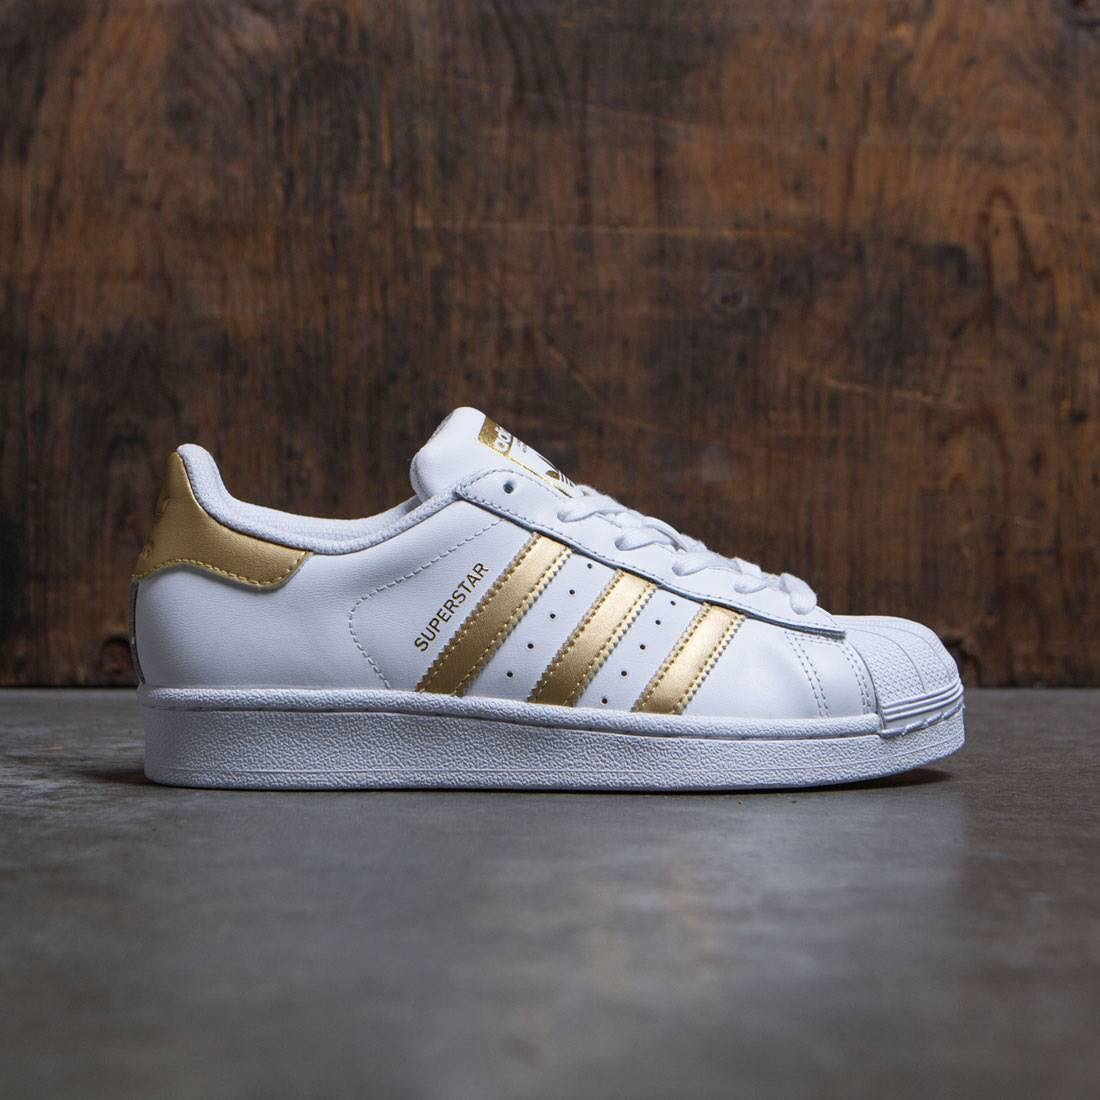 Giầy Adidas superstar